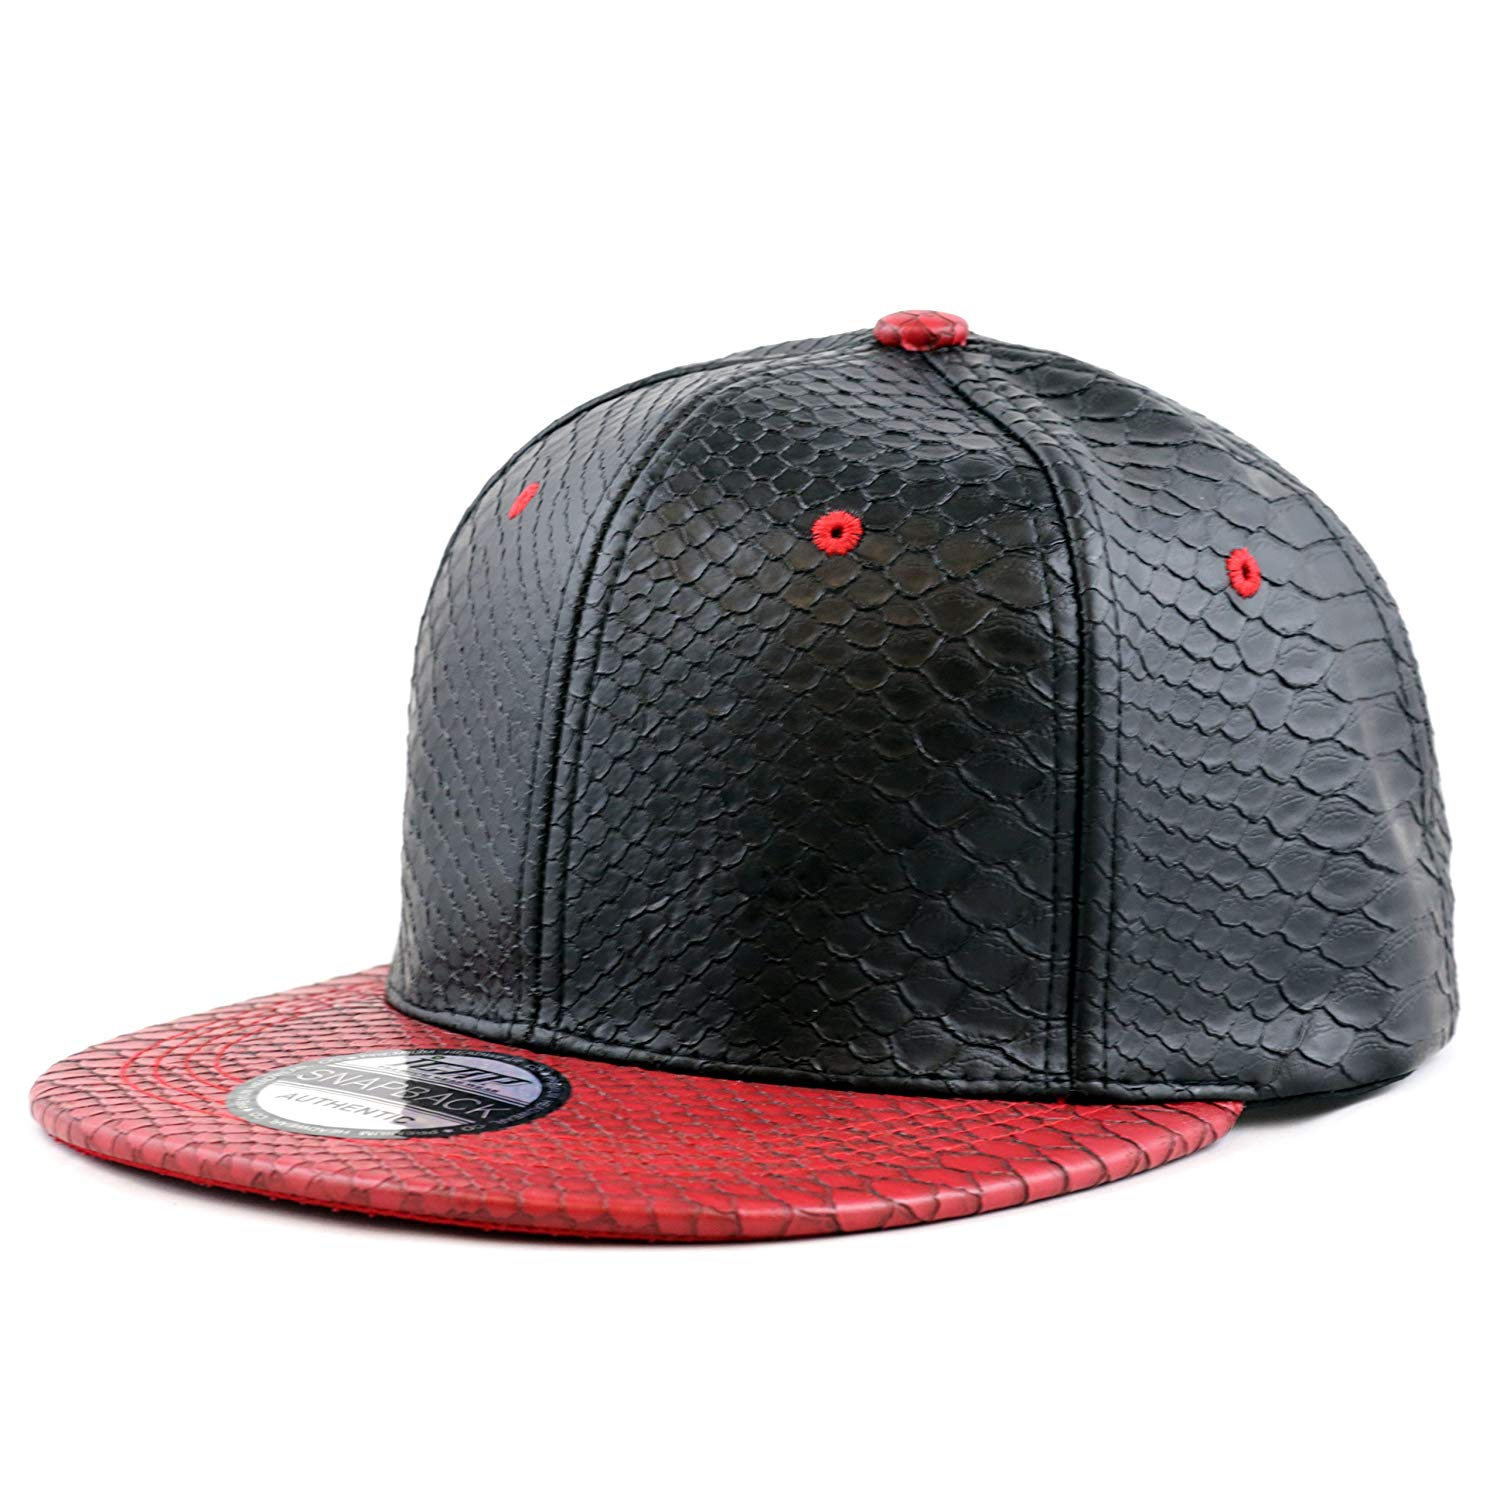 Get Quotations · The Hat Depot 1300 Snakeskin PU Leather Snapback Plain cap e1639d593f27